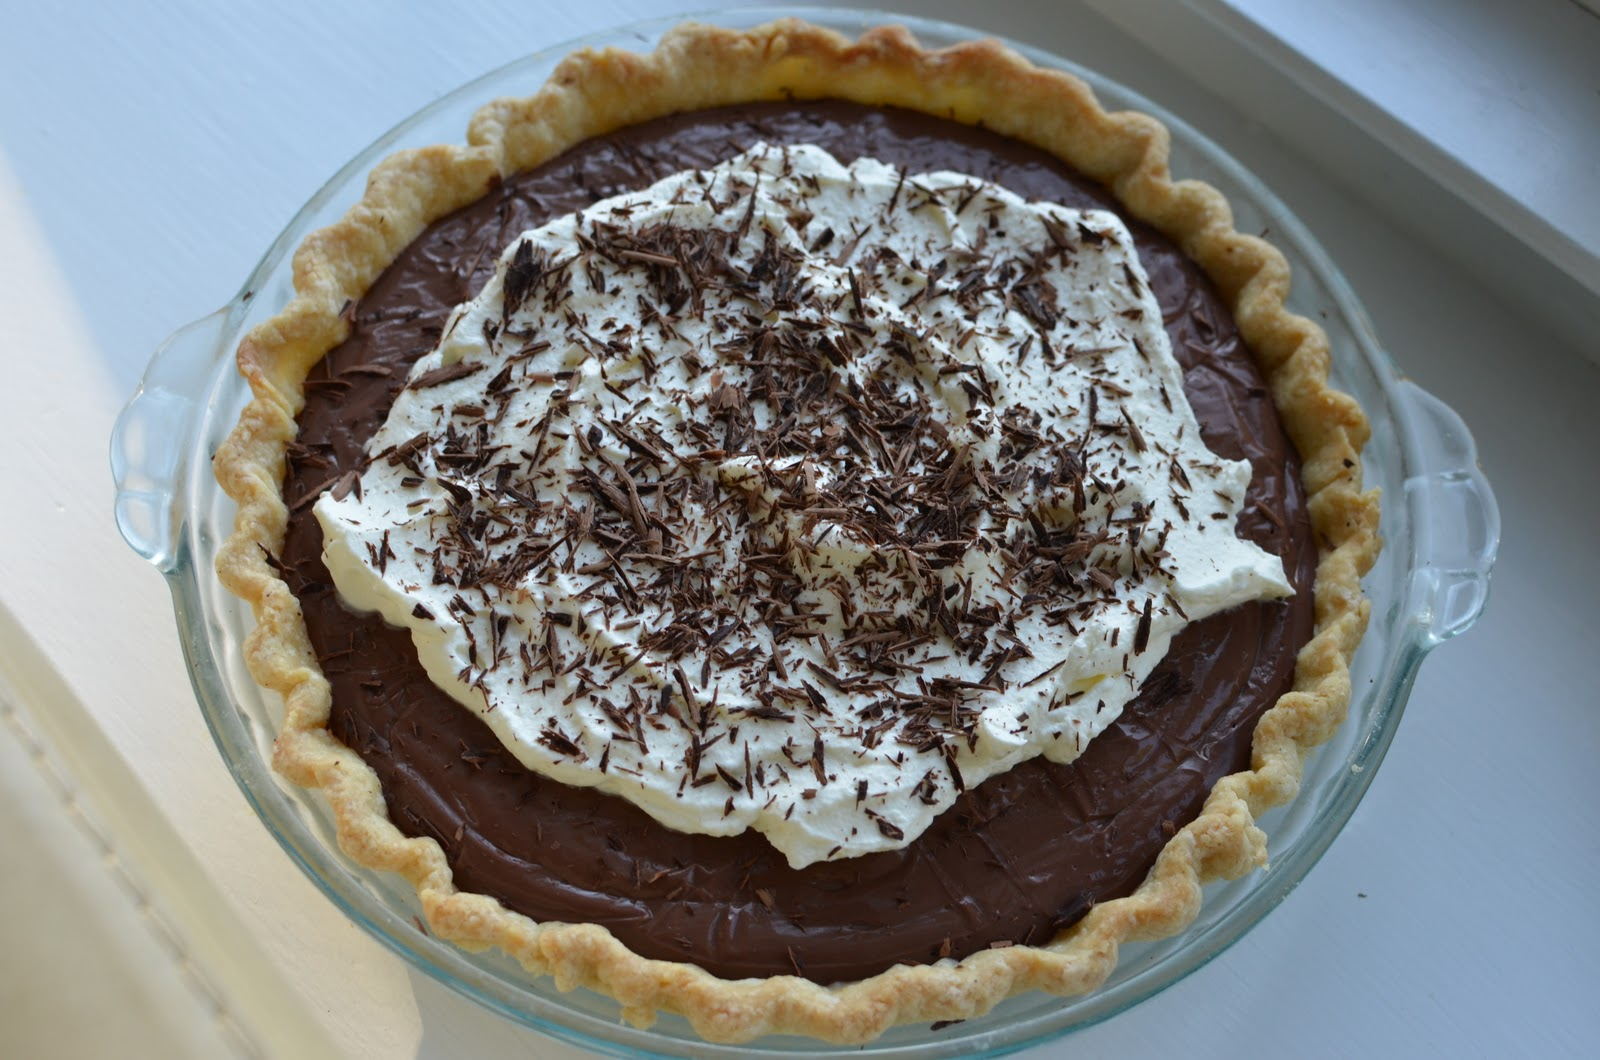 The recipe for this chocolate pudding pie comes from Smitten Kitchen .